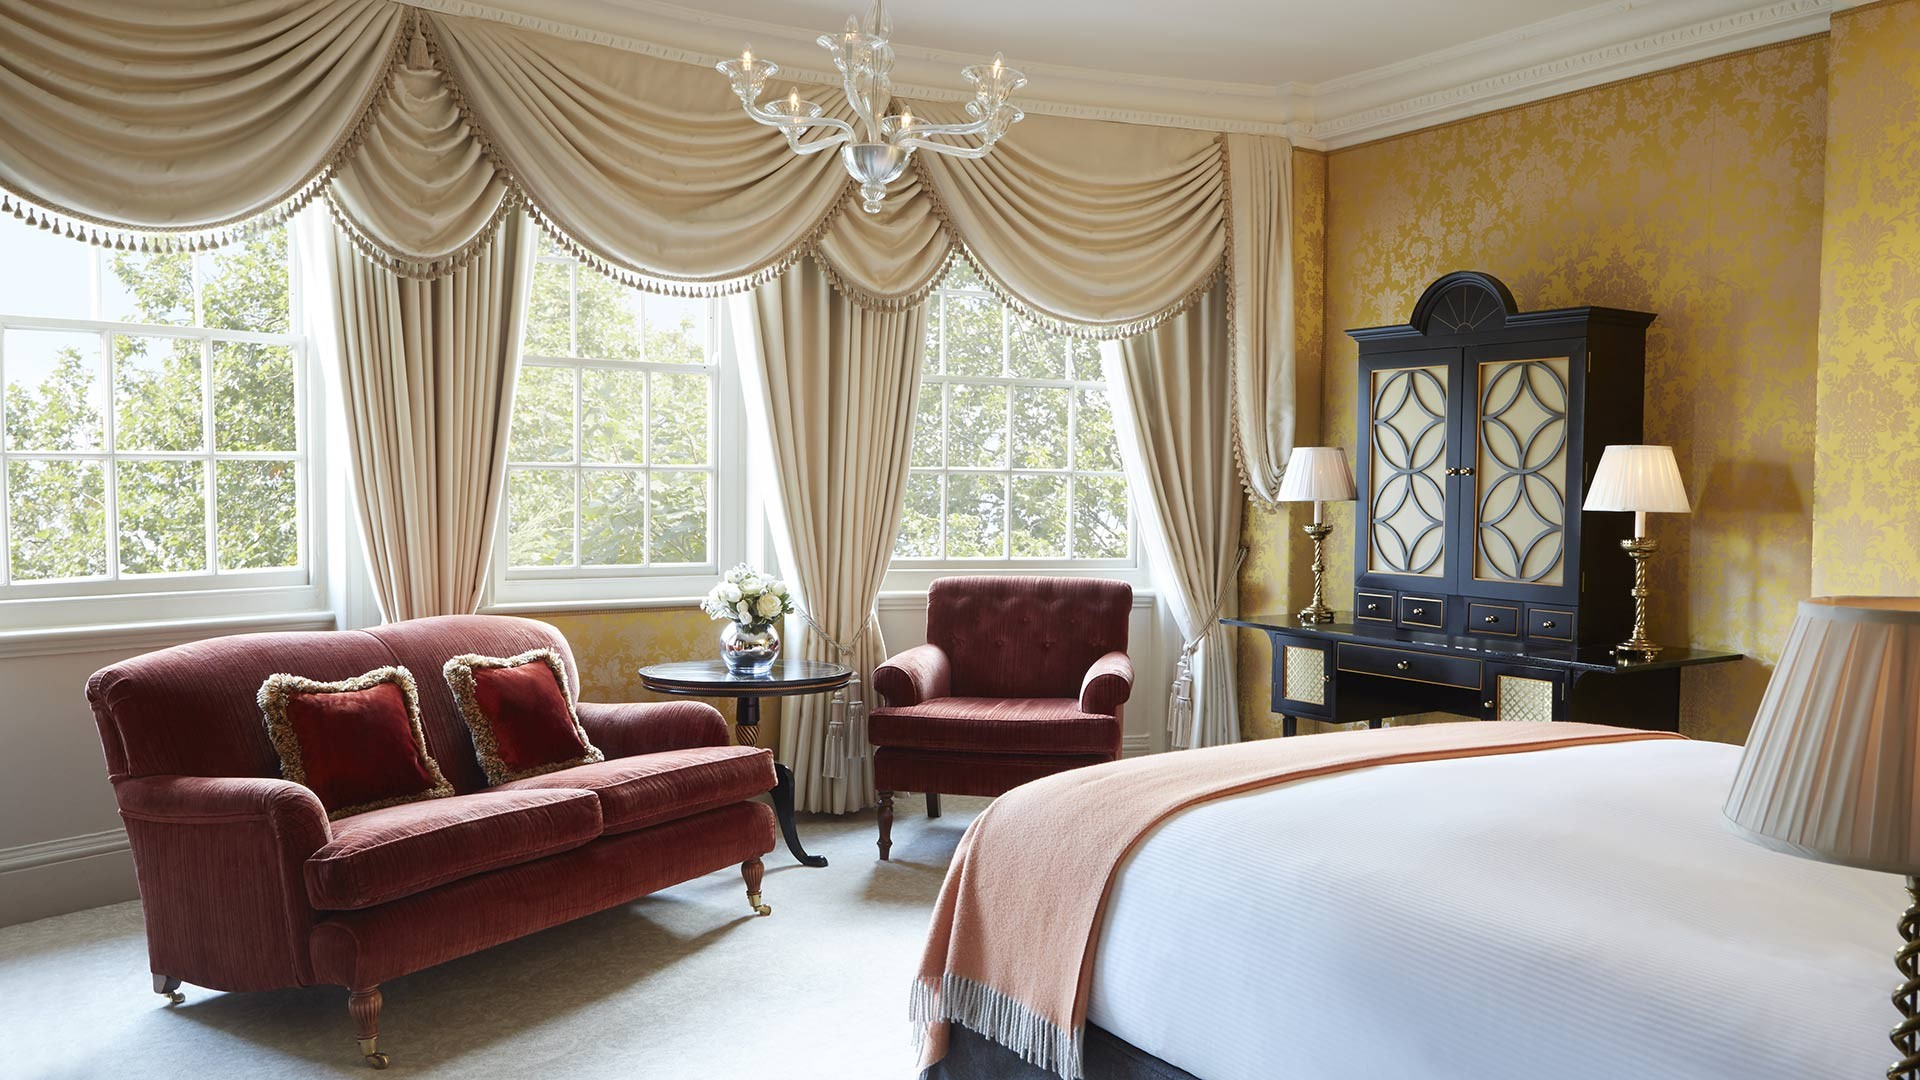 The Goring Luxury 5 Star Hotels Victoria London Pride